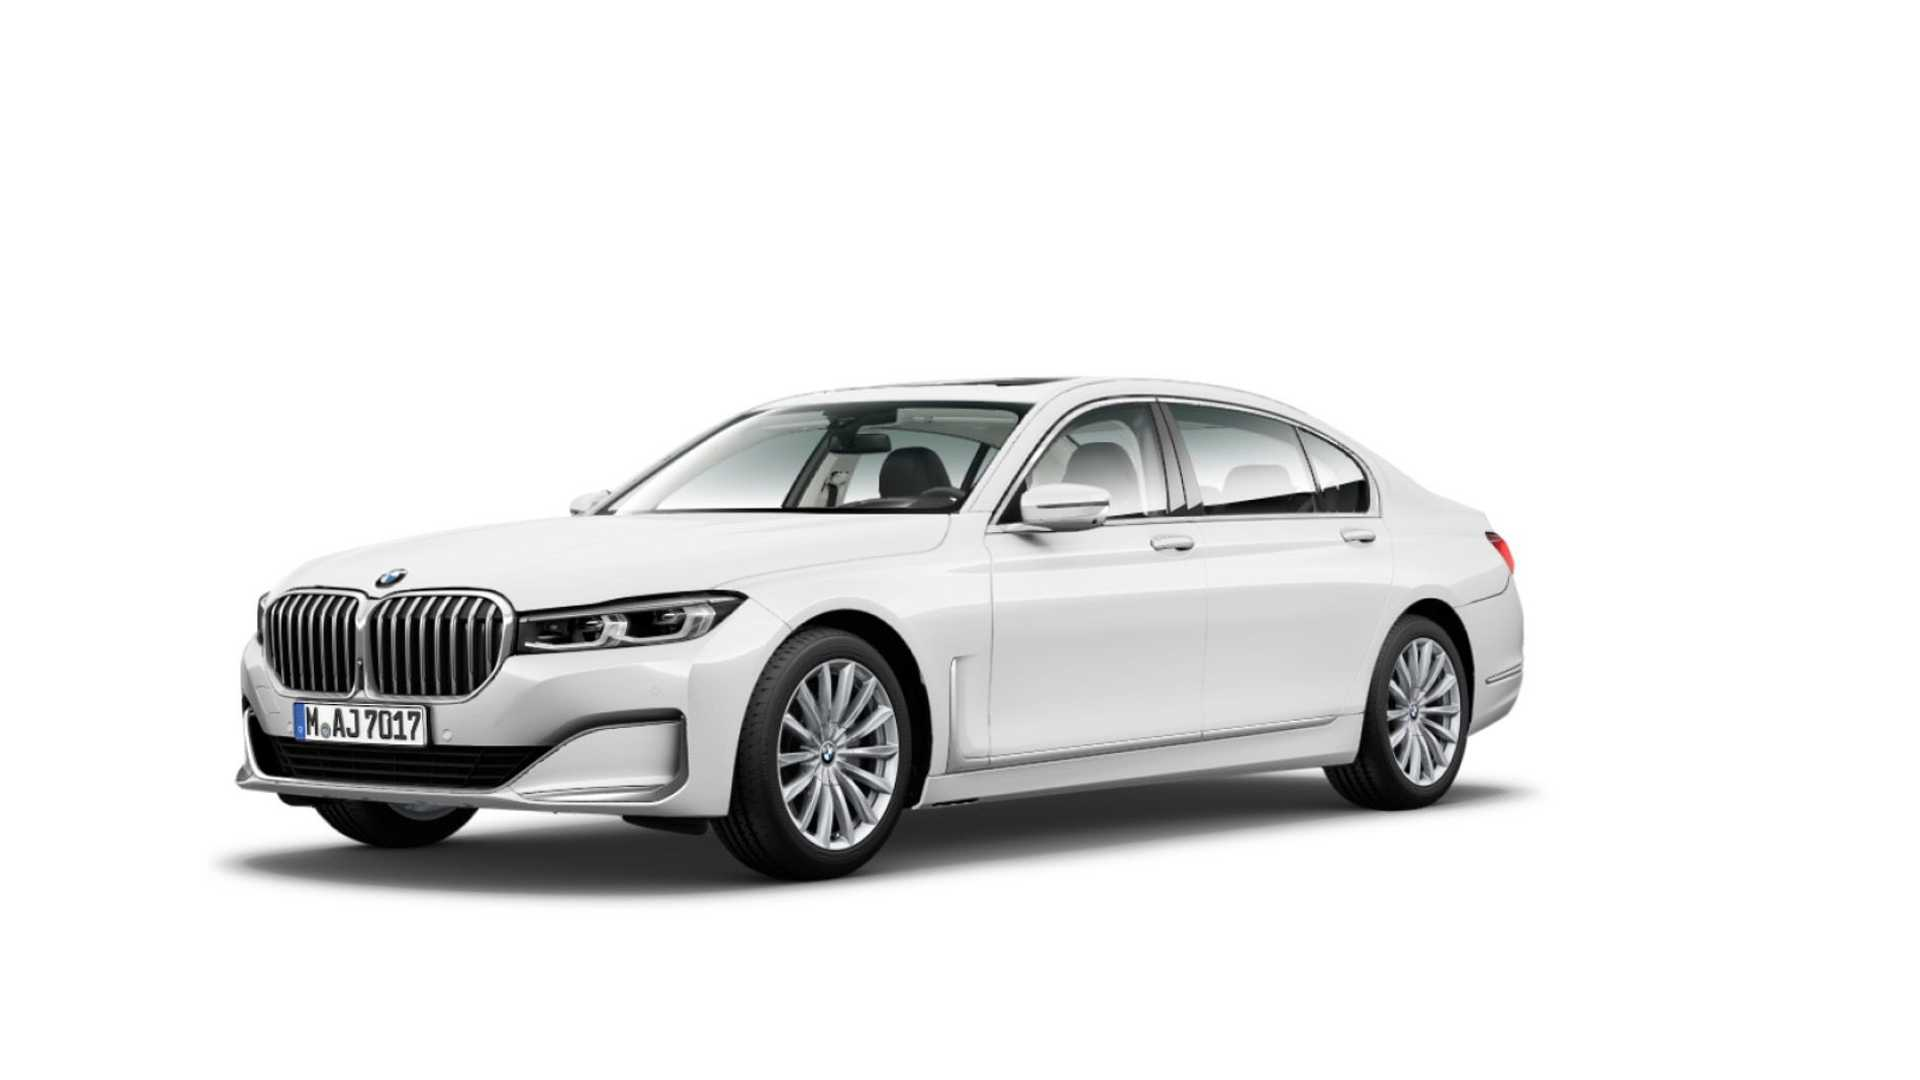 BMW 7 Series facelift 2019 leaked official images (2)